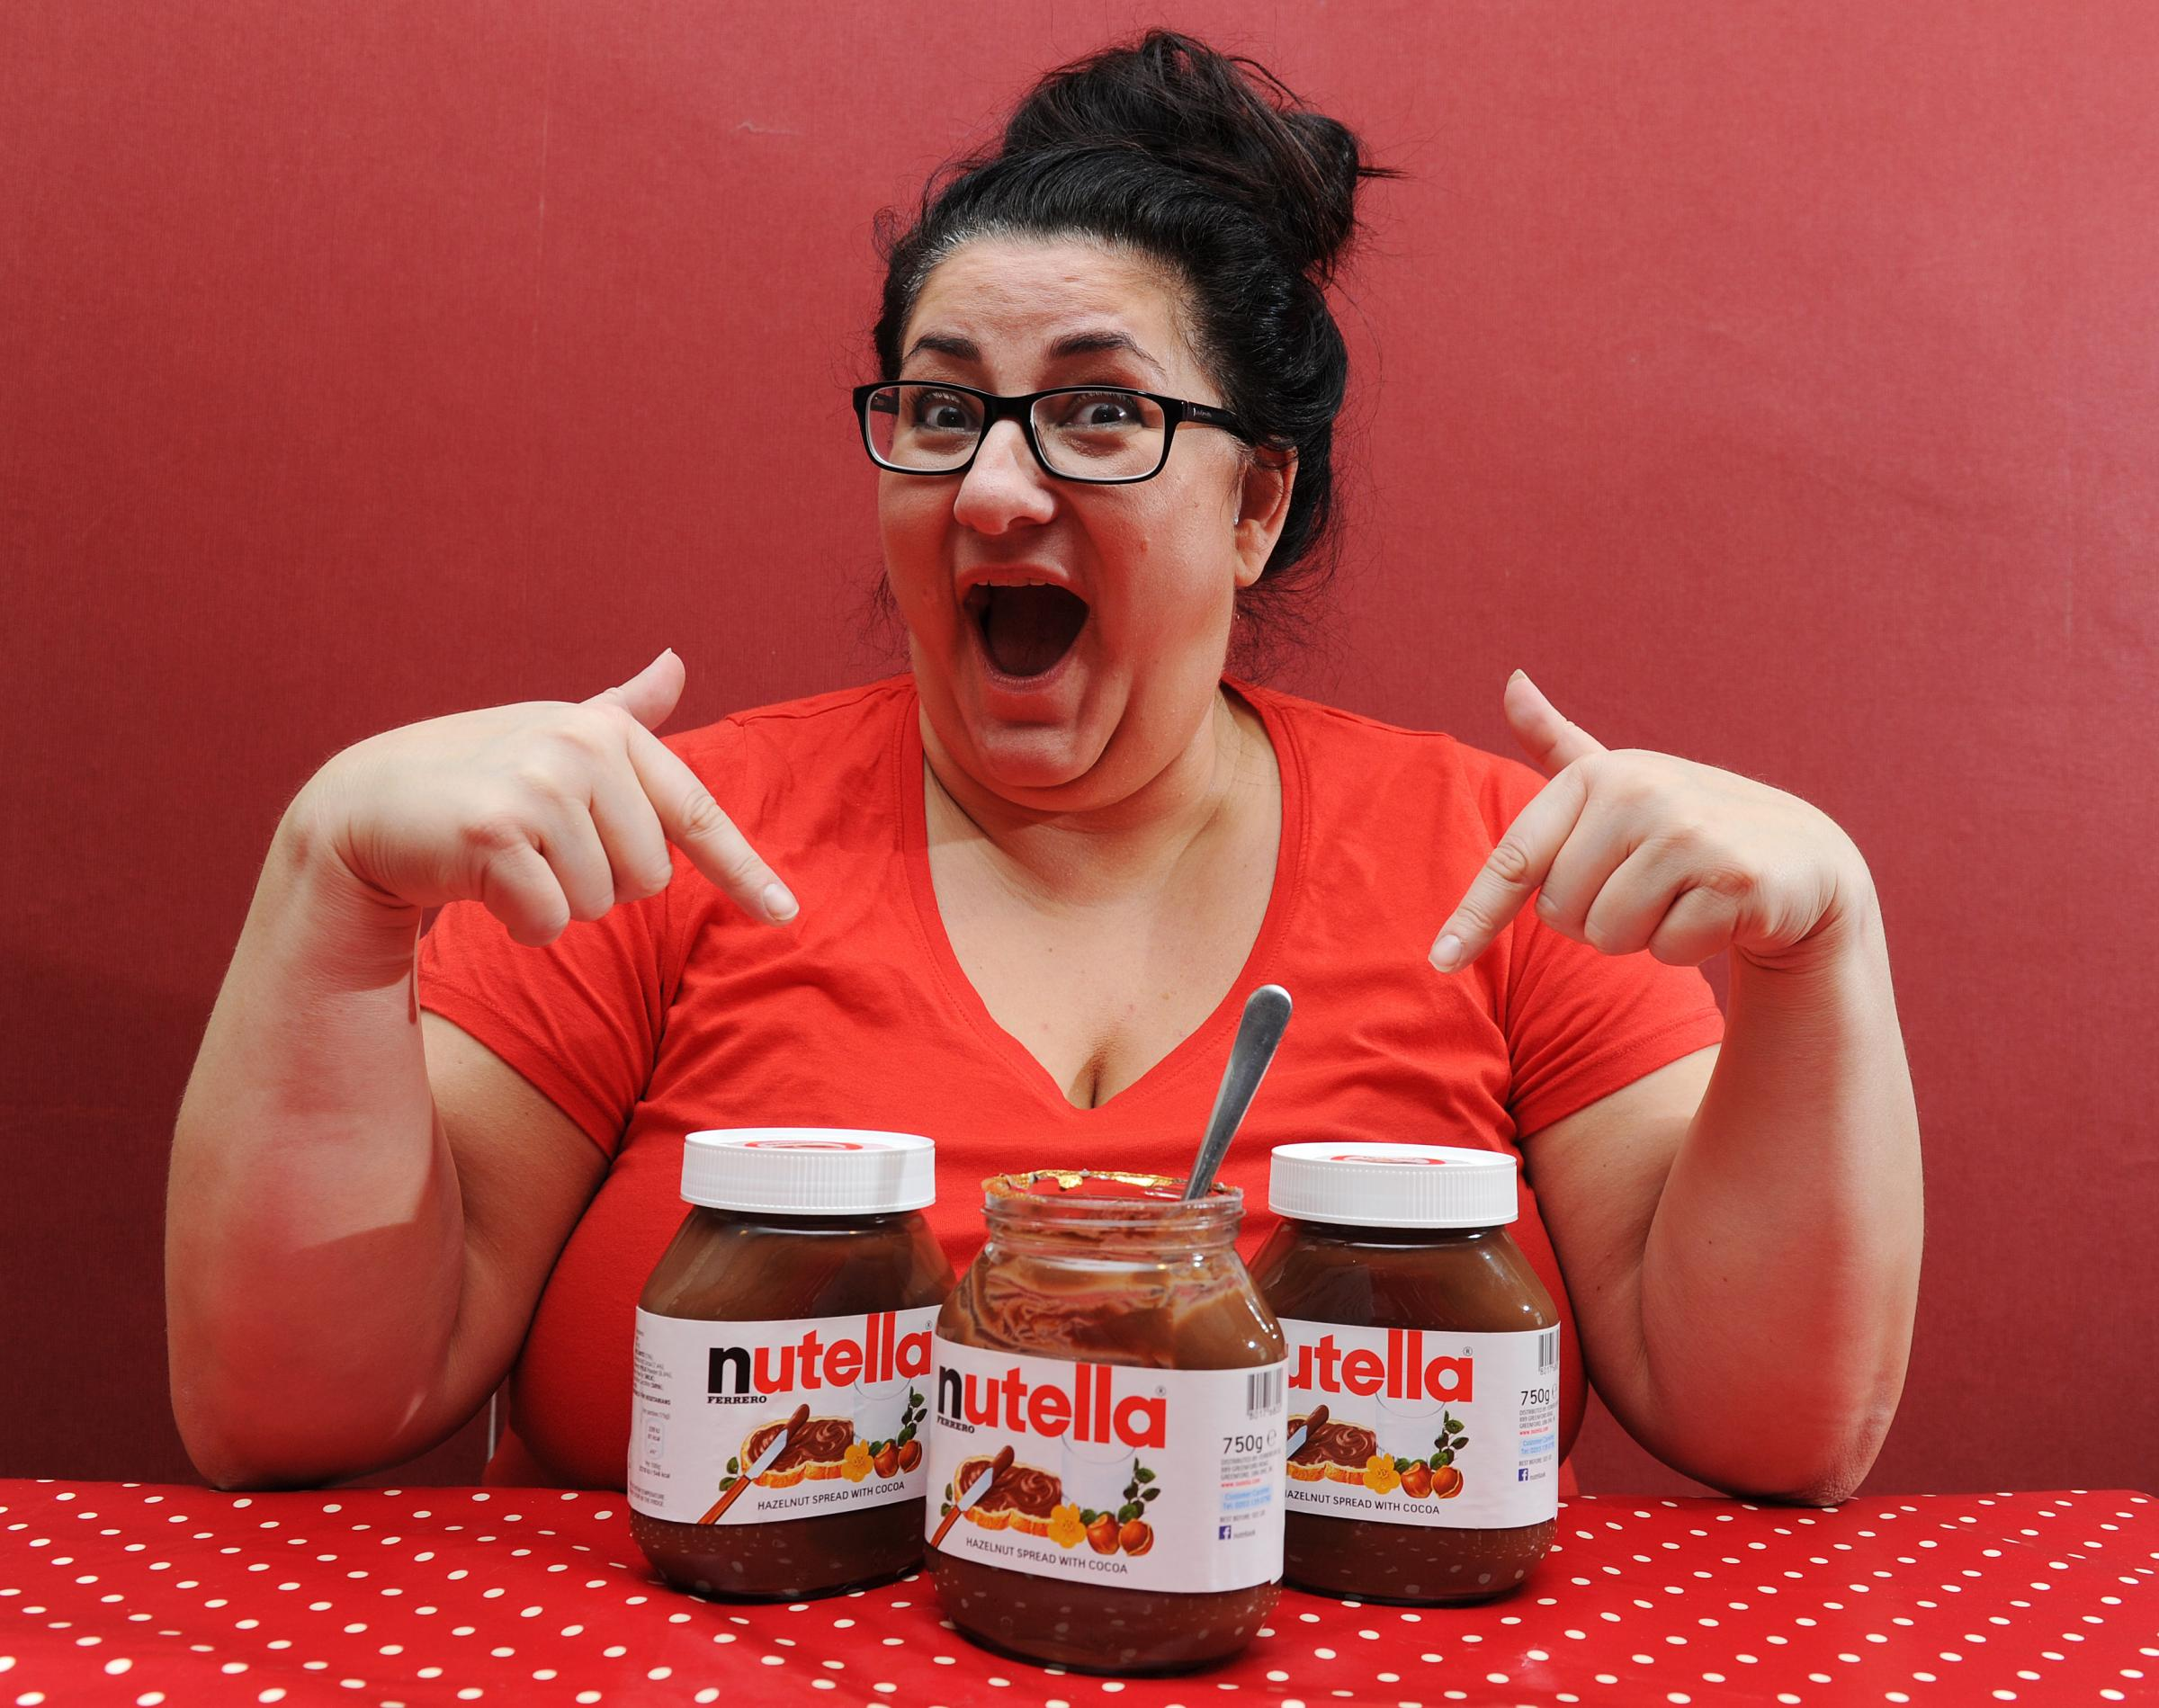 Antonella Brollini from Haslingden is hoping to break the world record for eating a jar of Nutella to raise money for Children in Need. Picture by Paul Heyes, Wednesday November 15, 2017.